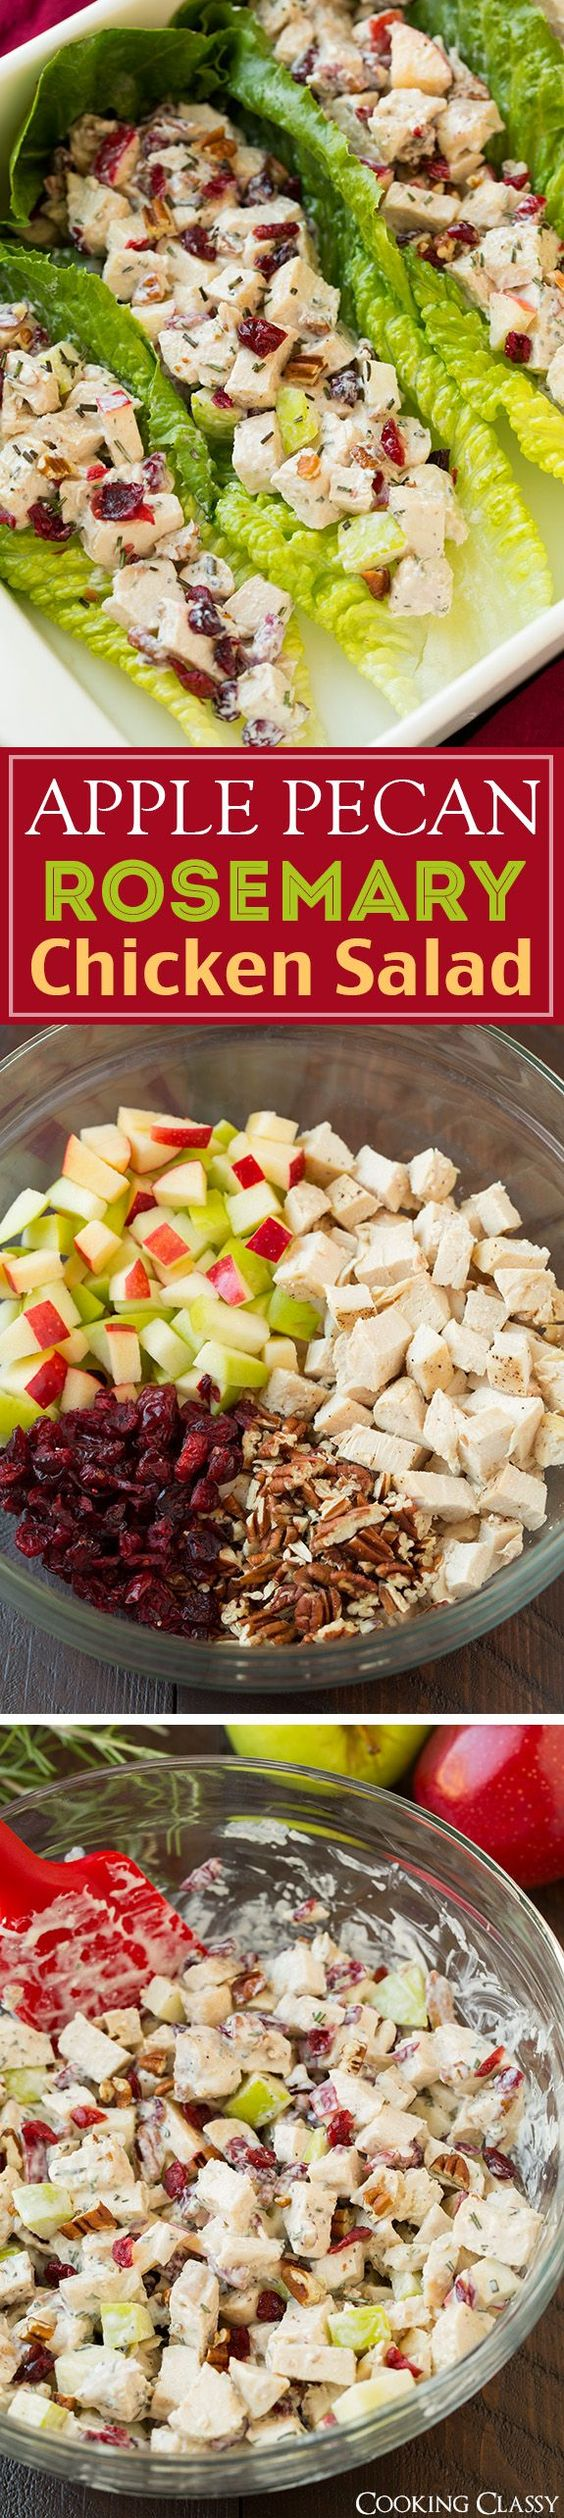 Apple Pecan Rosemary Greek Yogurt Chicken Salad - perfect in a ...